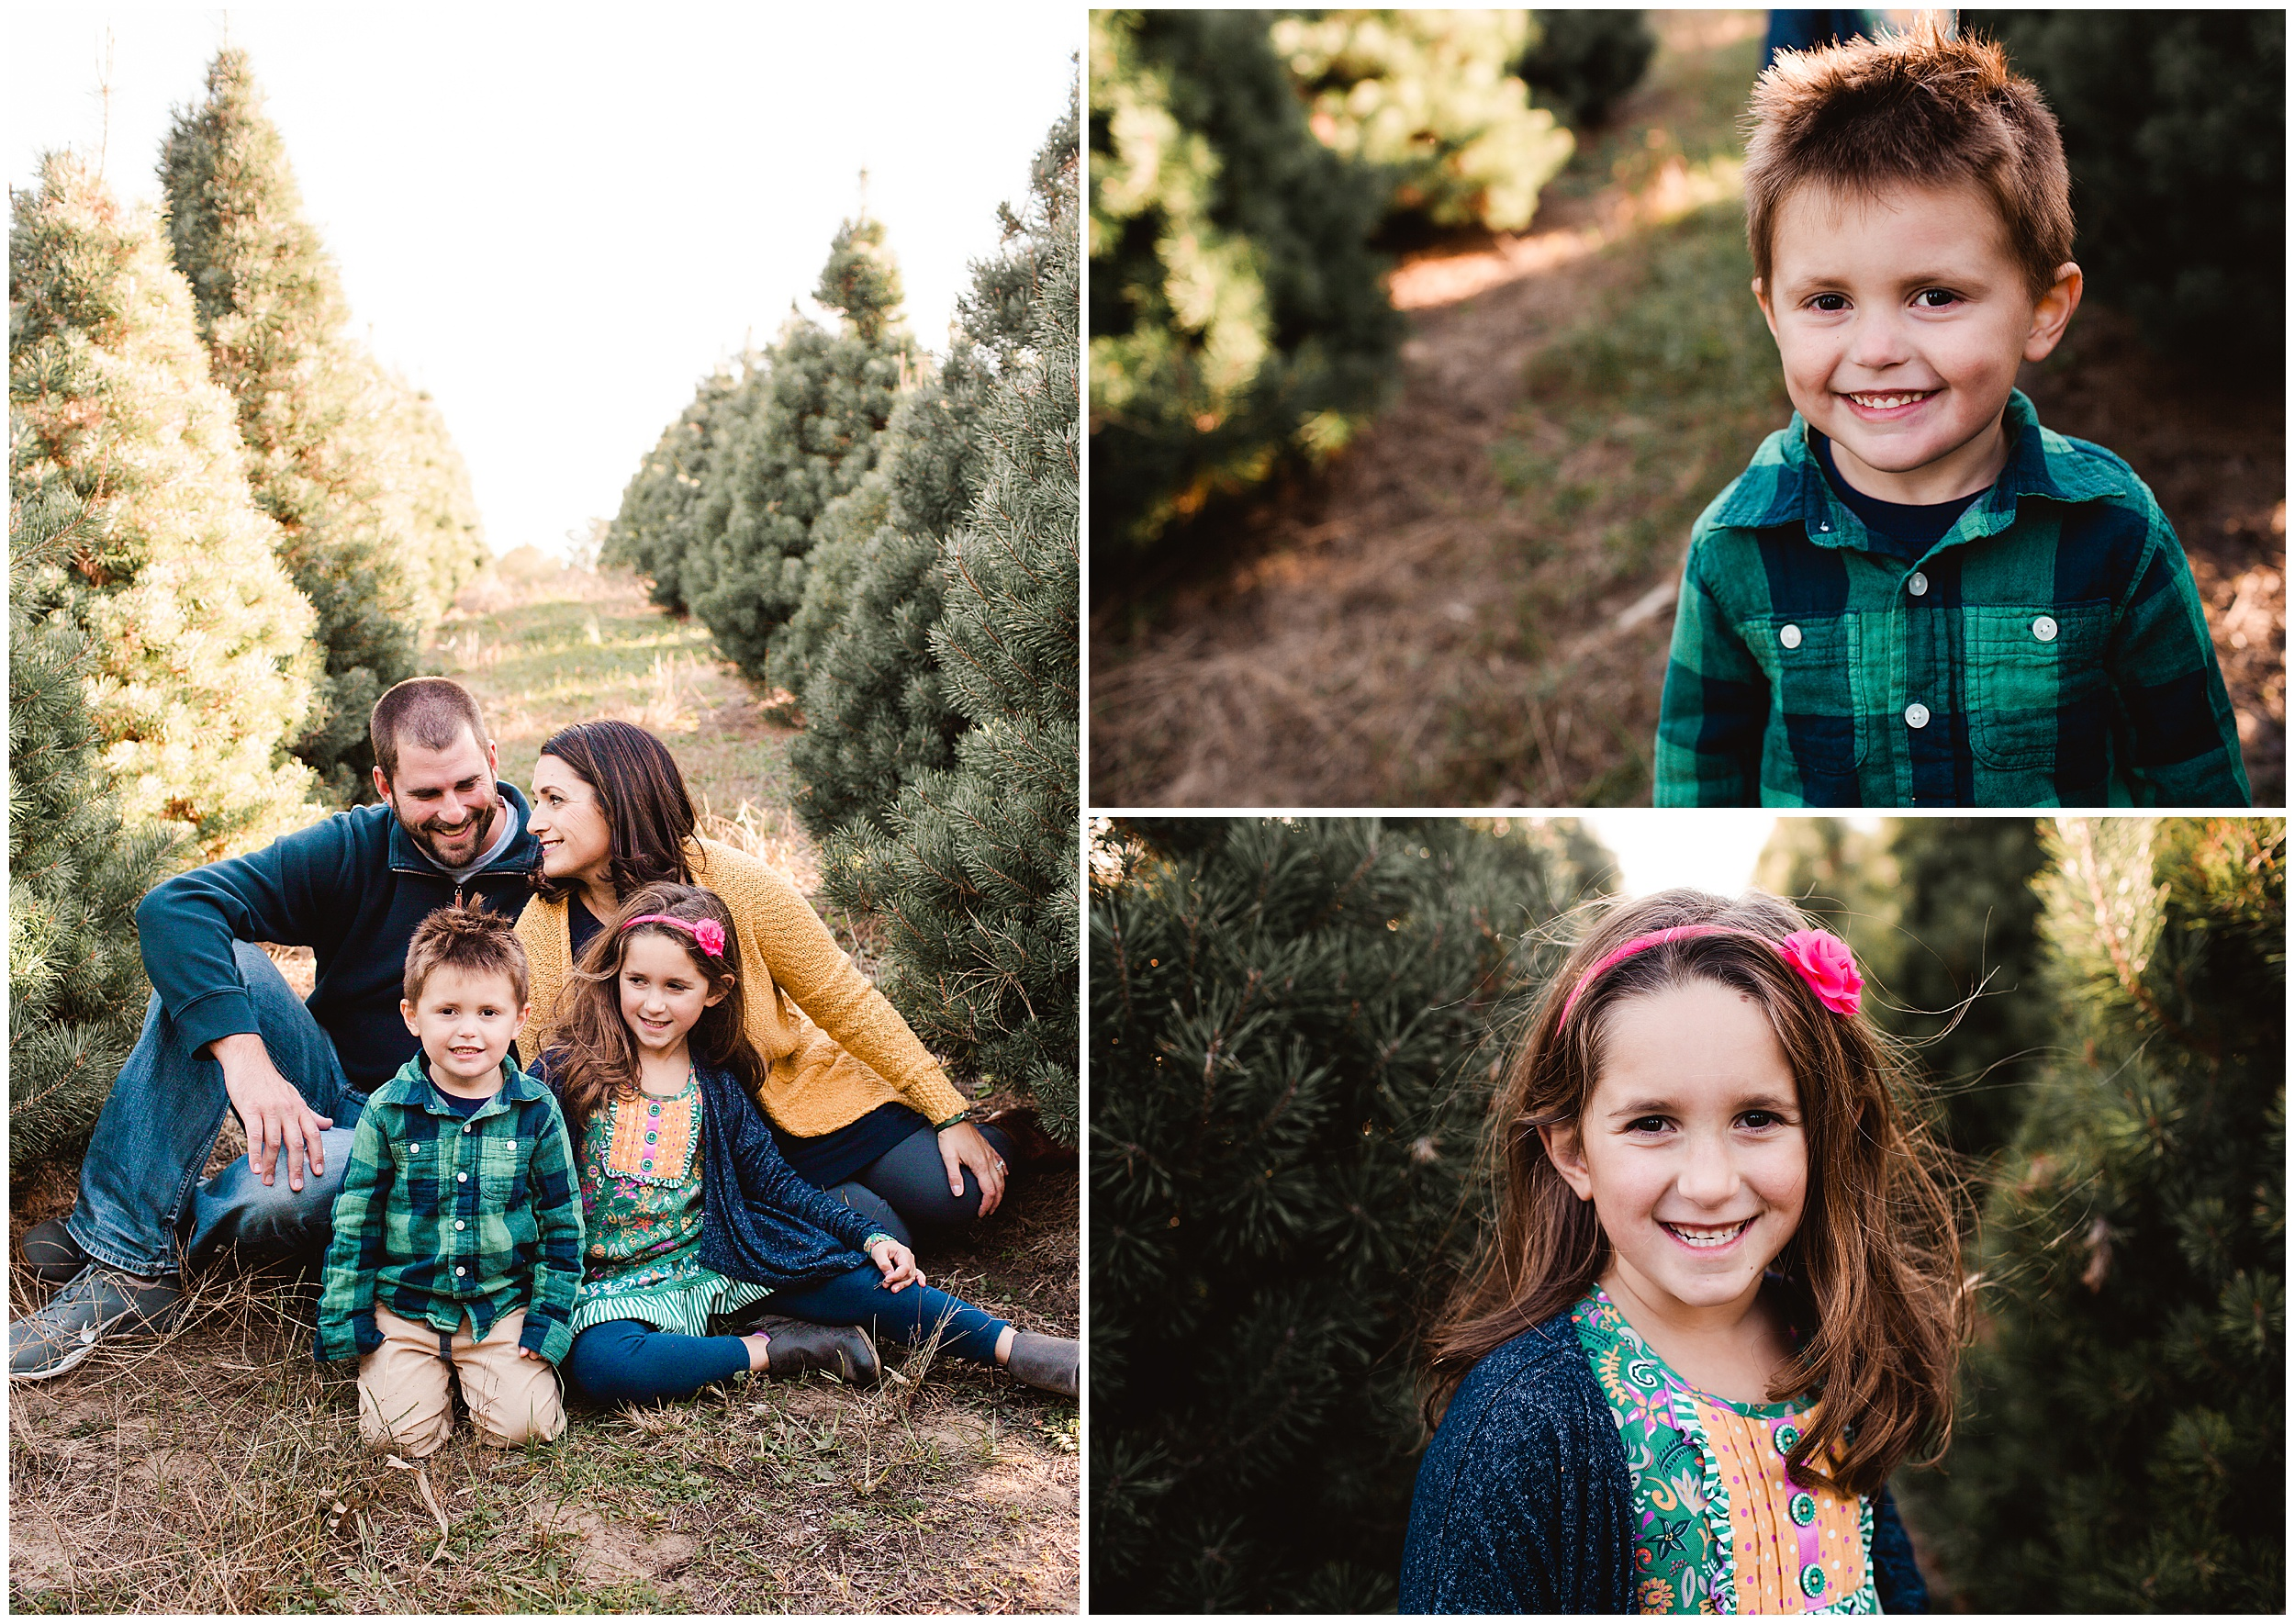 Indianapolis Family Photographer_Kelli White Photography_IG_0216.jpg